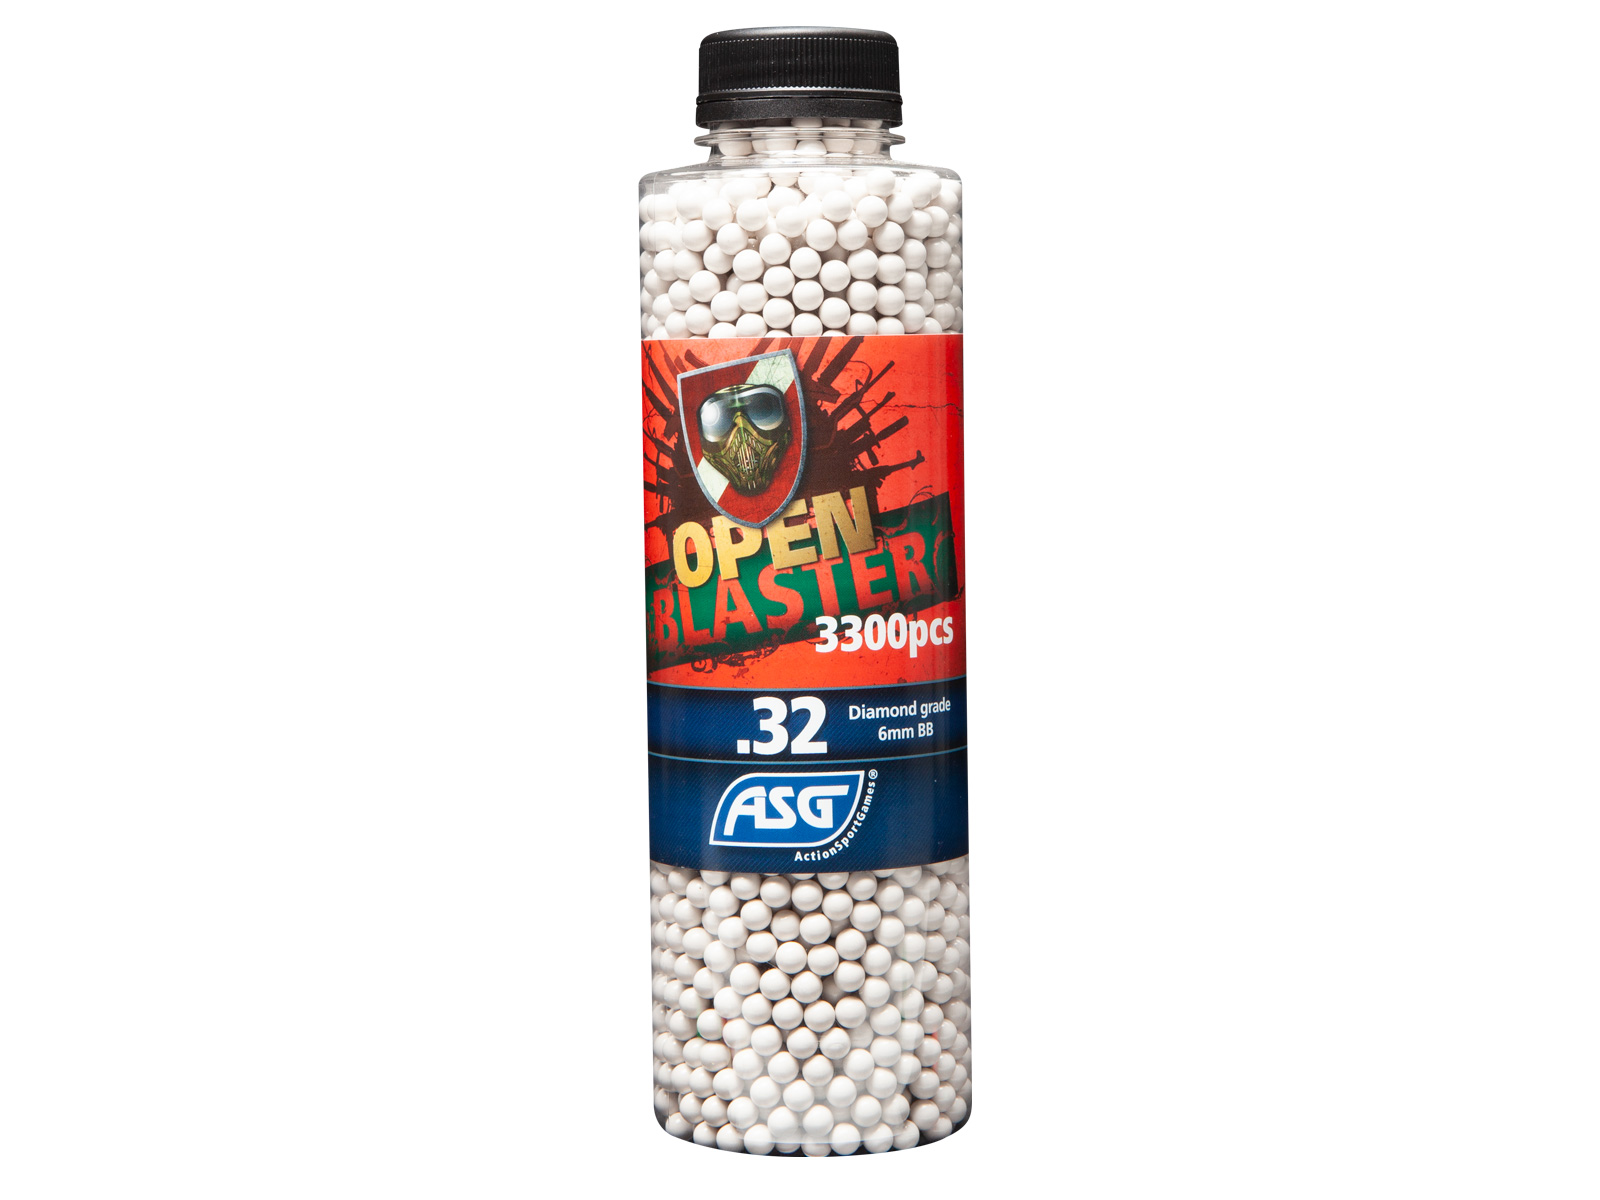 Open Blaster 0,32g Airsoft BB -3300 pcs. in bottle product image